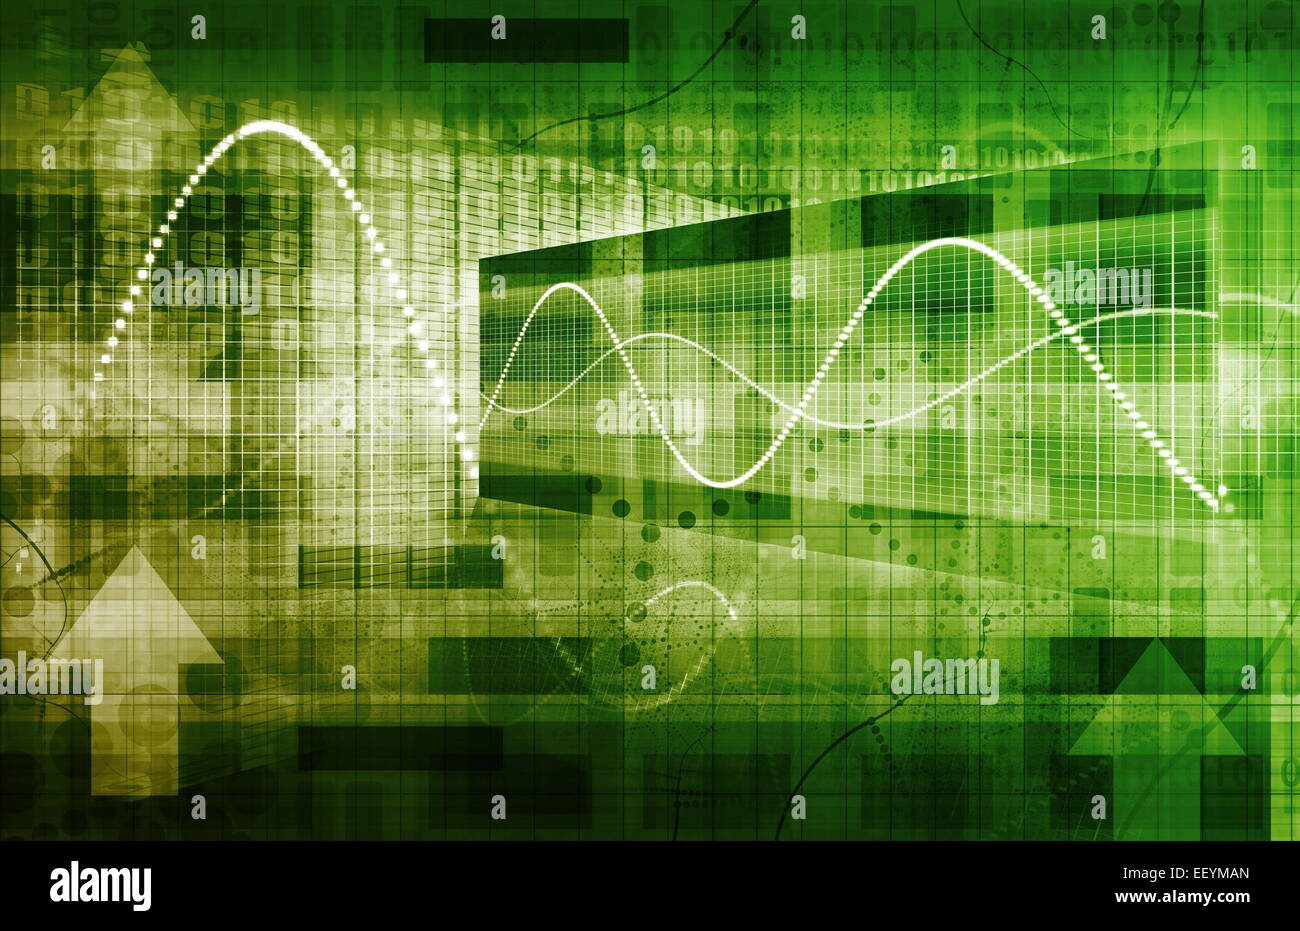 Technology Framework with a System Network Big Data - Stock Image